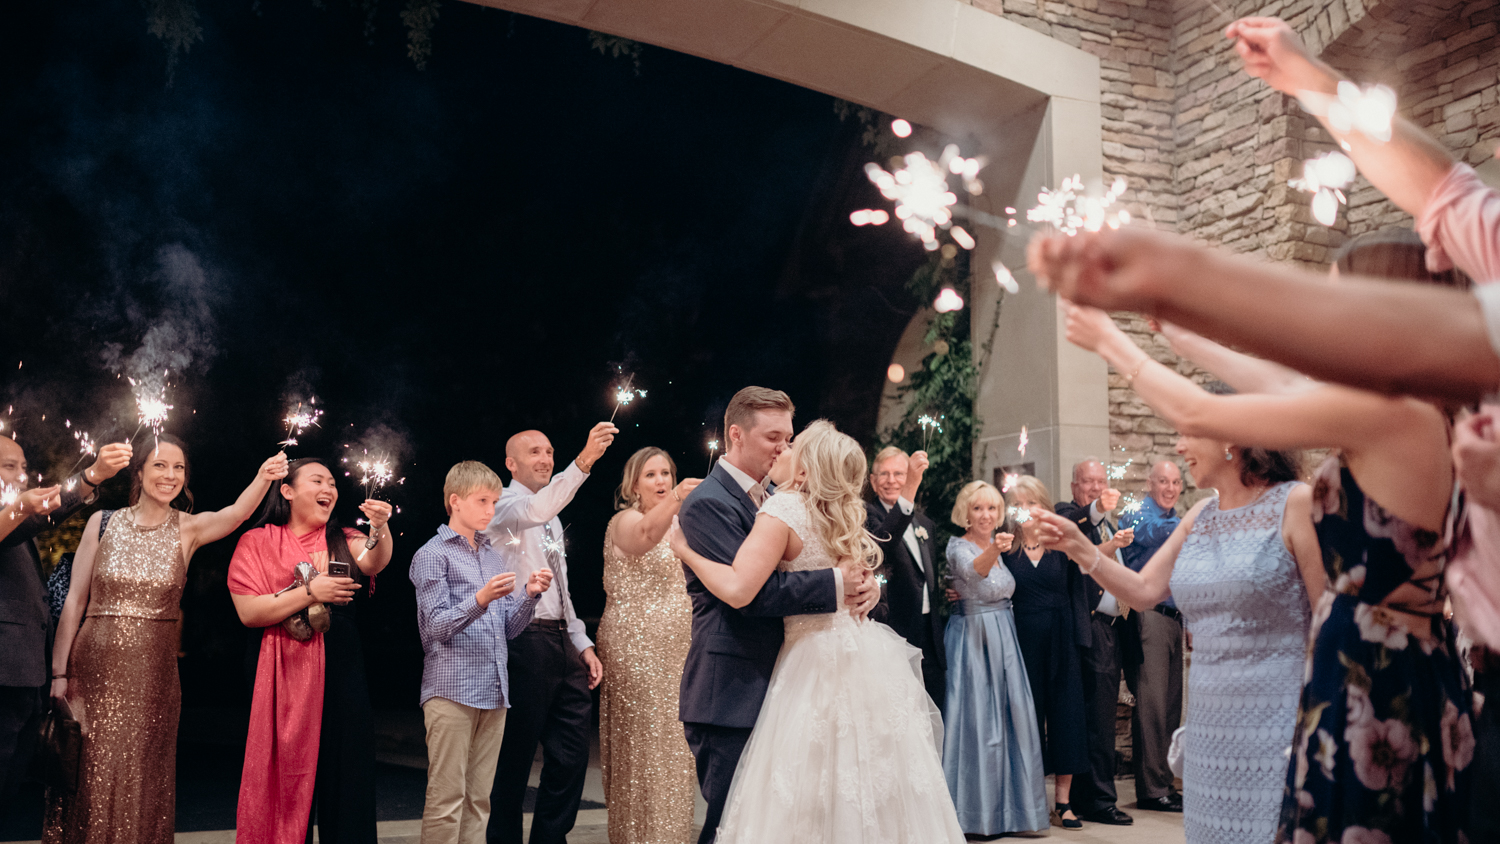 A bride and groom share a kiss during their sparkler exit after their wedding reception at Lansdowne Resort.